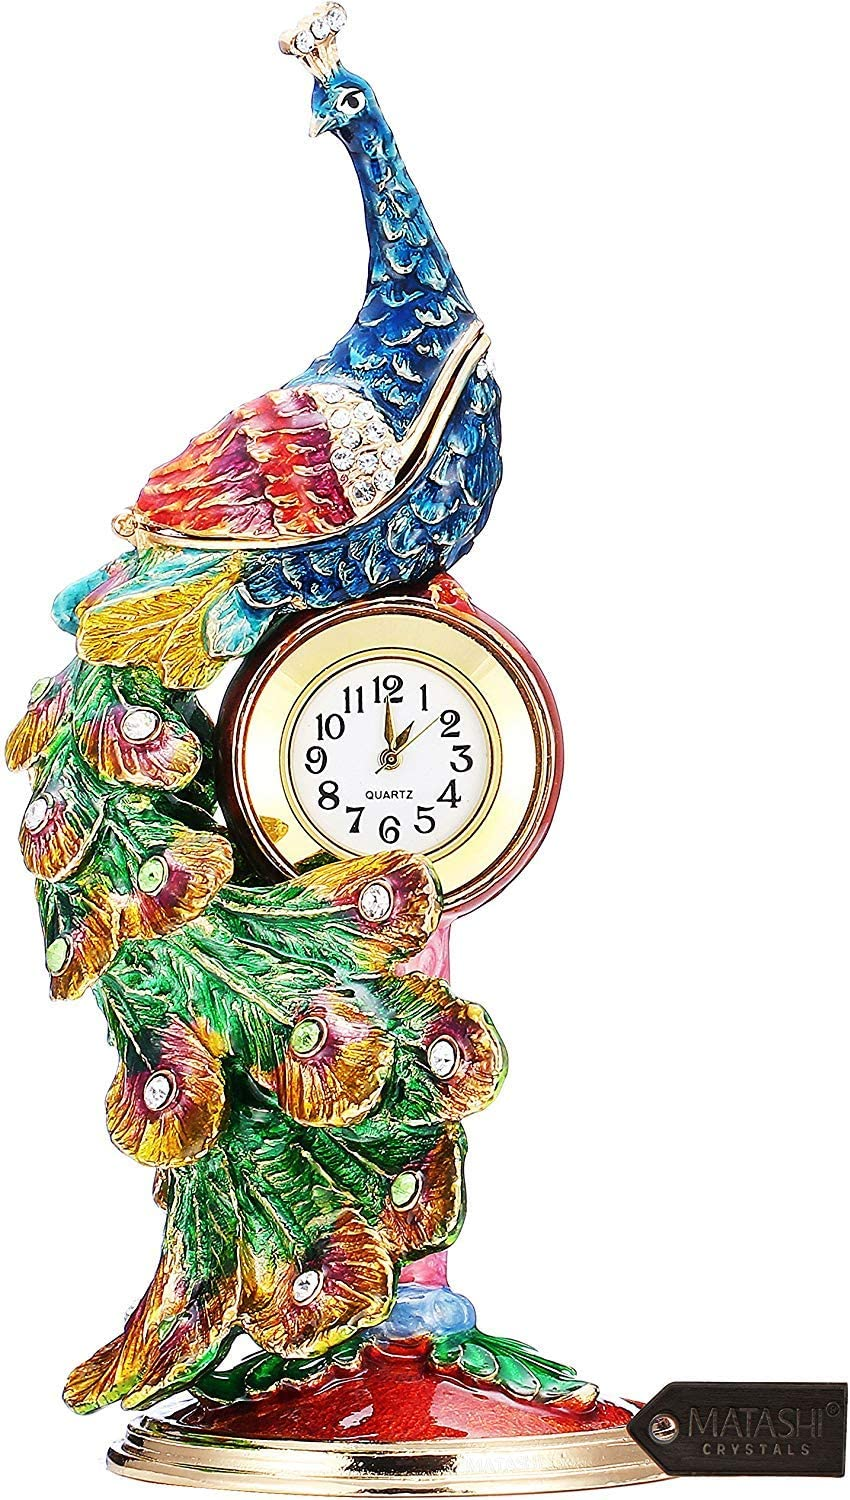 Matashi Hand Painted Peacock Trinket Box and Table Clock Hand-Painted Jewelry Holder with Elegant Crystals Decorative Bird, Long Feathers Home, Living Room Decor